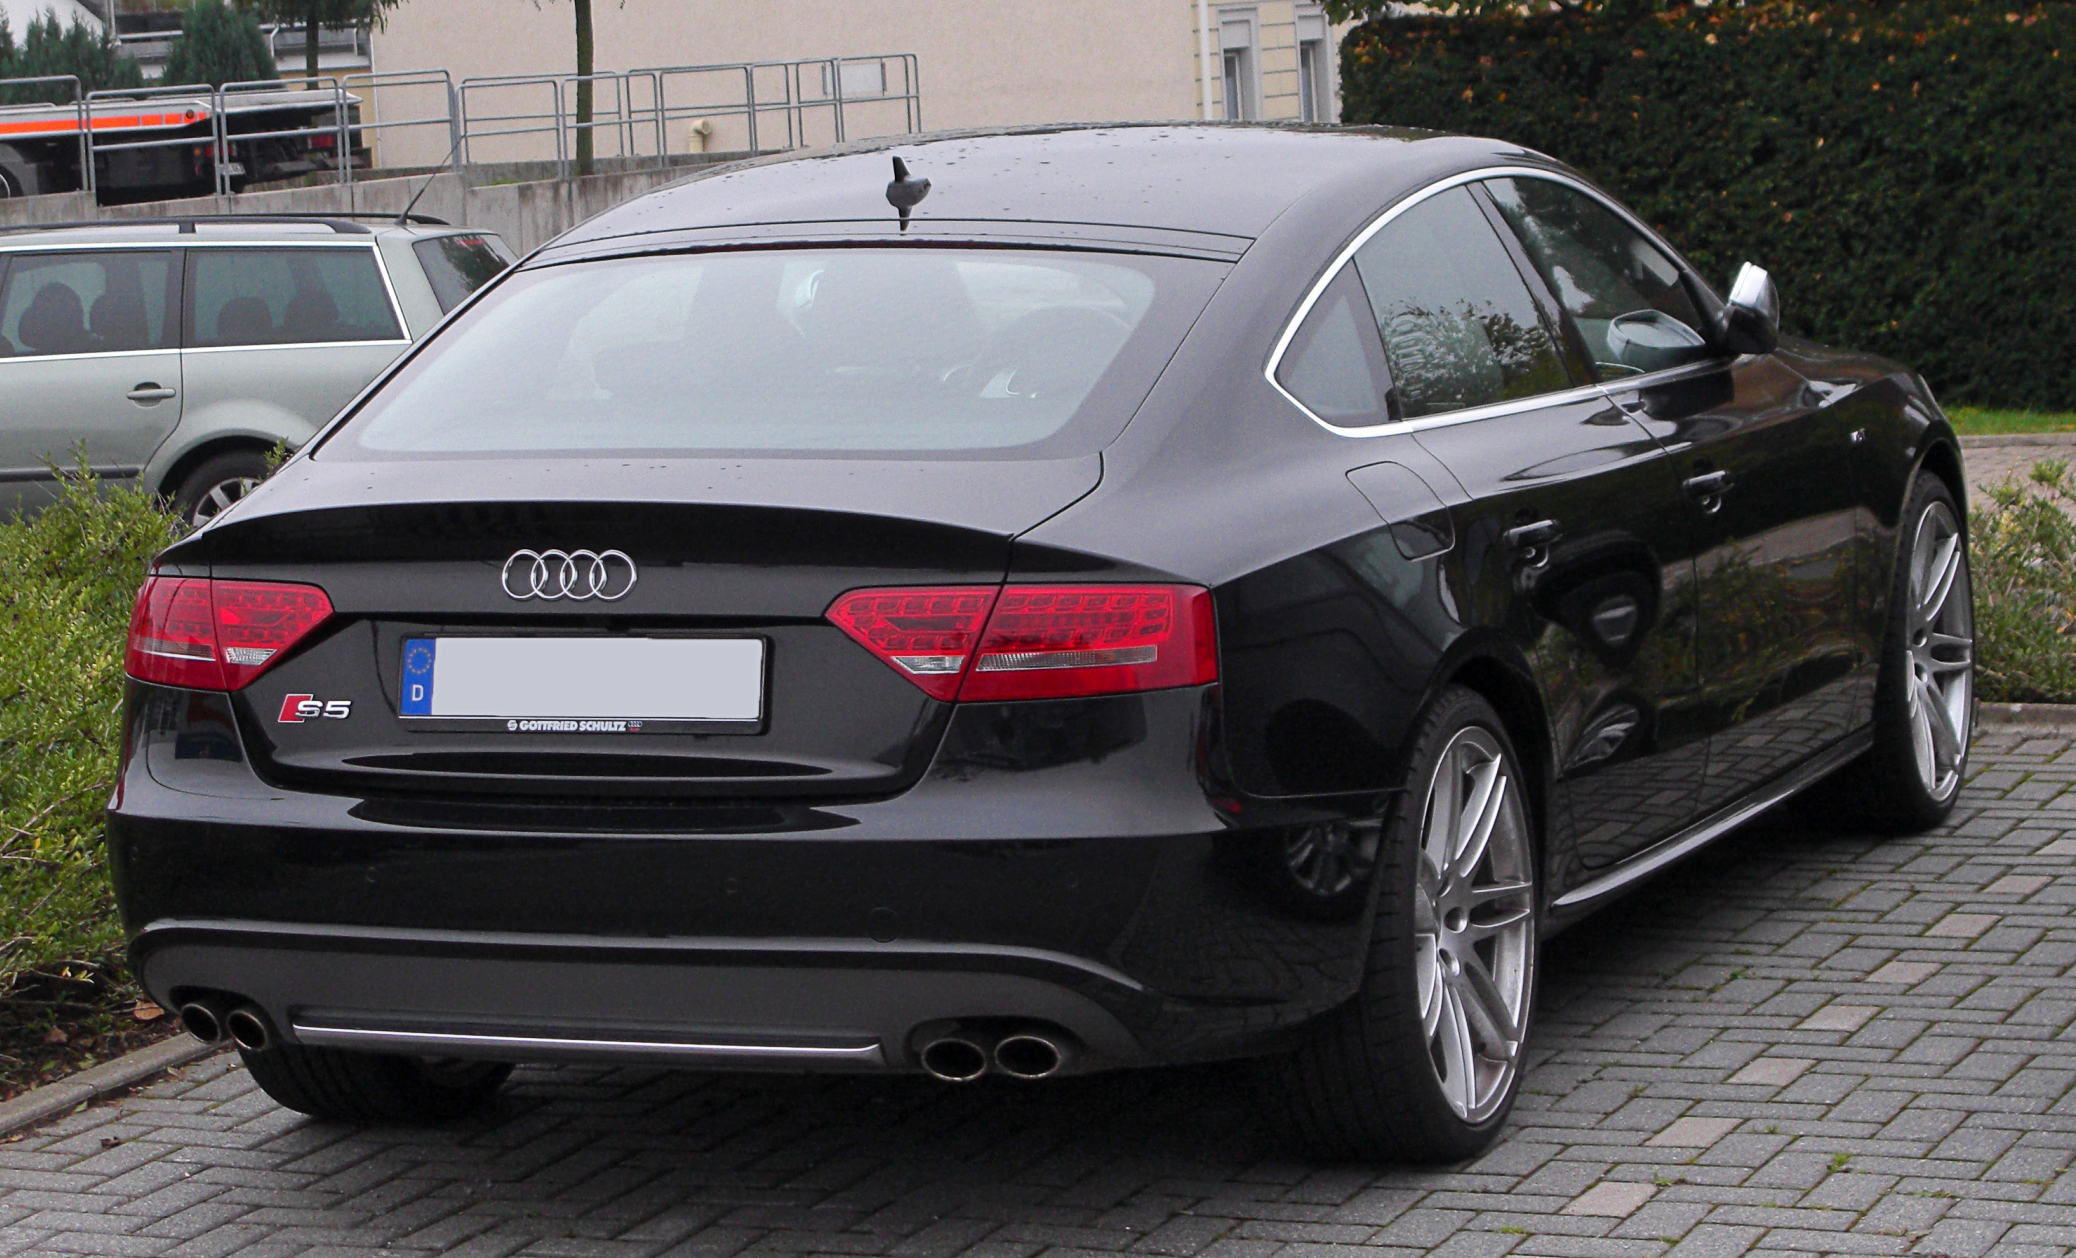 FileAudi S5 Sportback rear 20101017jpg  Wikimedia Commons